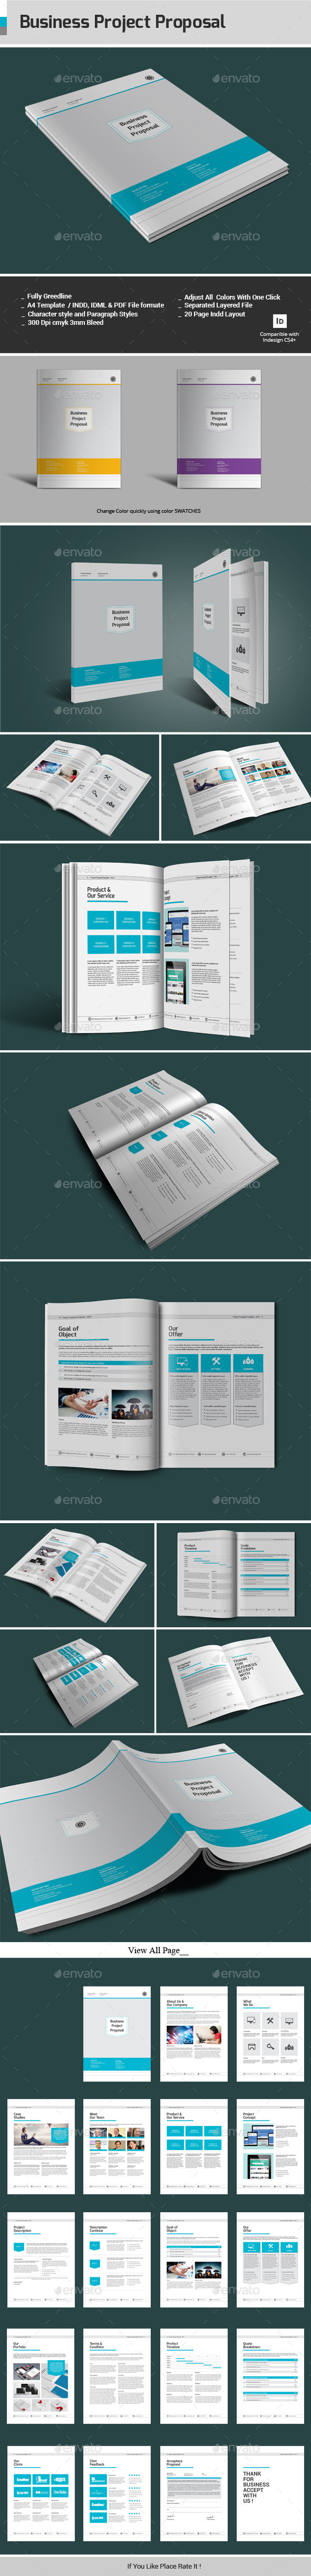 GraphicRiver Business Project Proposal 11968422